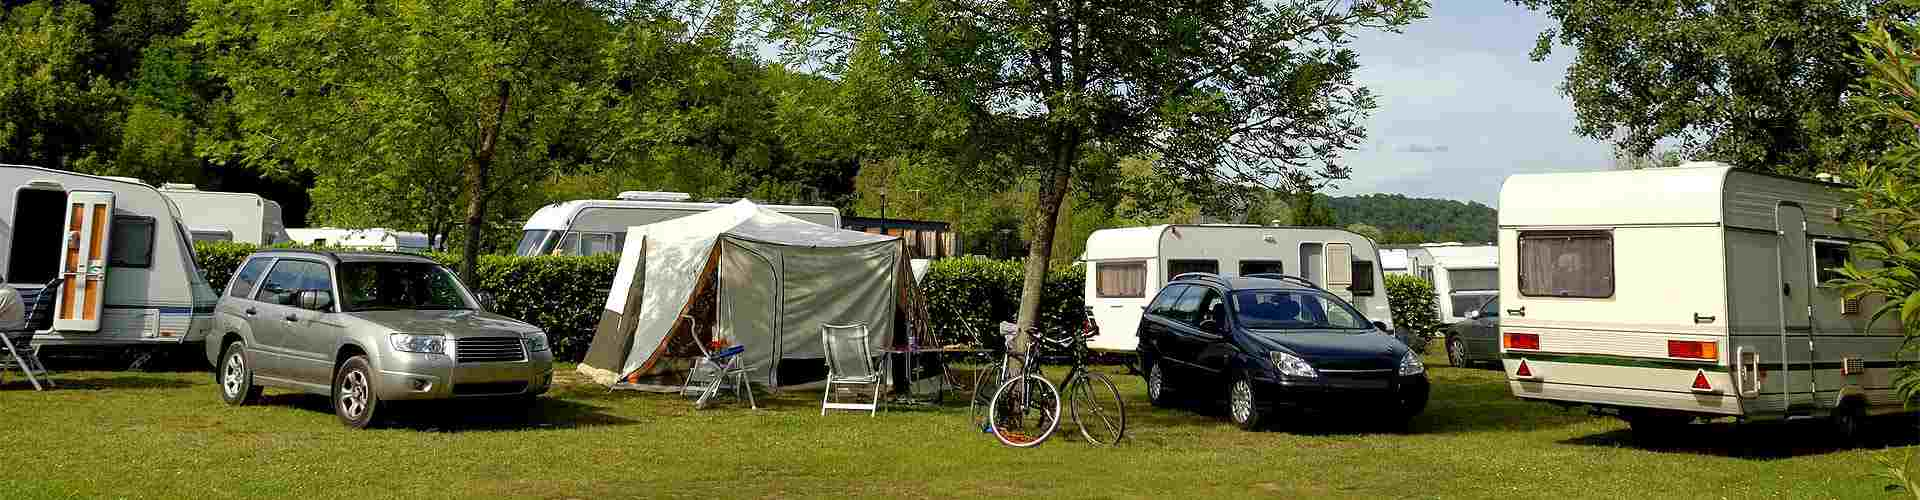 Campings y bungalows en Canyelles